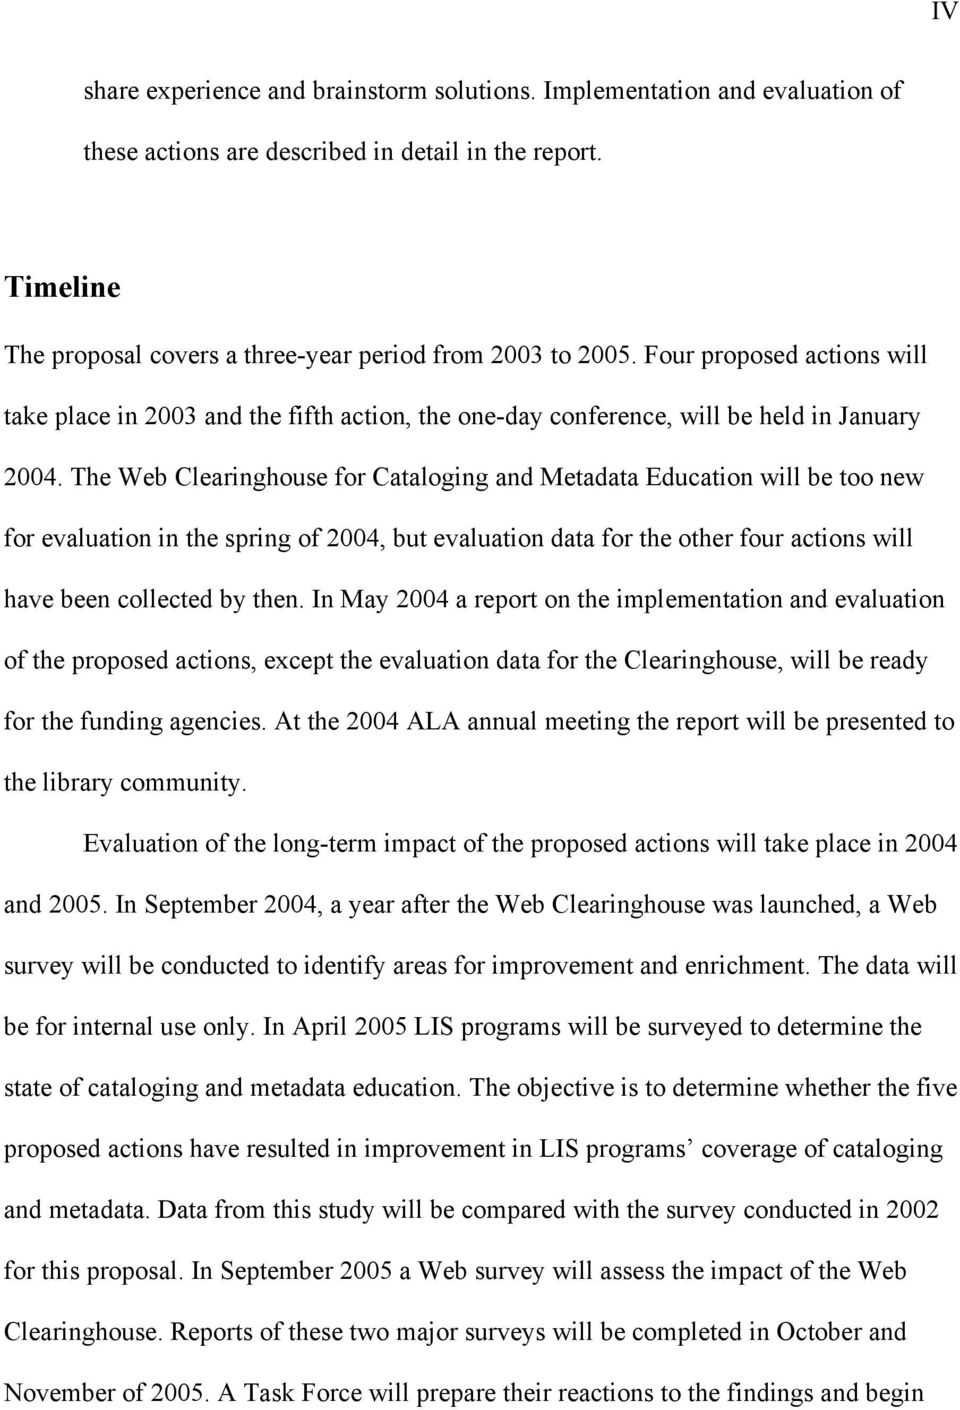 The Web Clearinghouse for Cataloging and Metadata Education will be too new for evaluation in the spring of 2004, but evaluation data for the other four actions will have been collected by then.